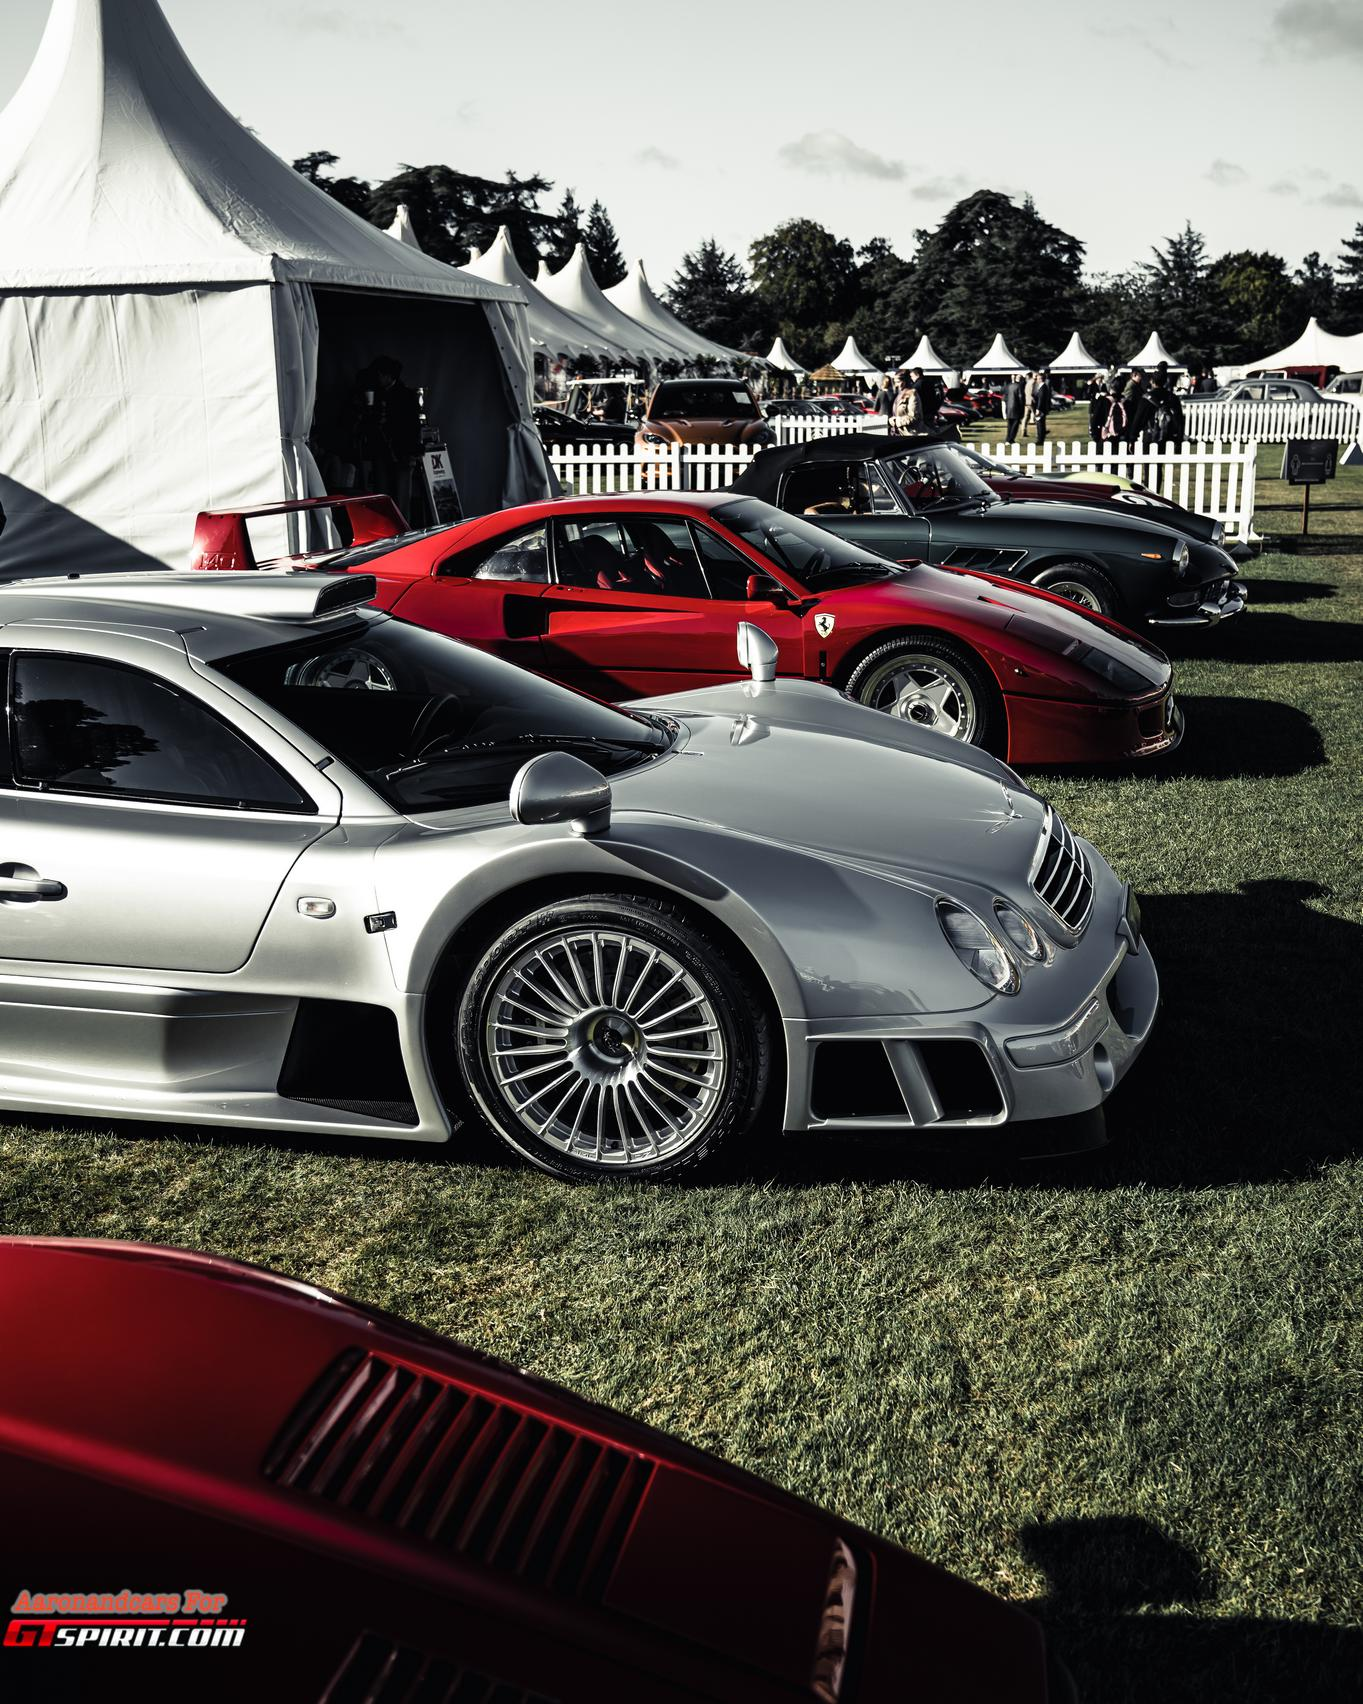 Salon Prive 2020 CLK GTR